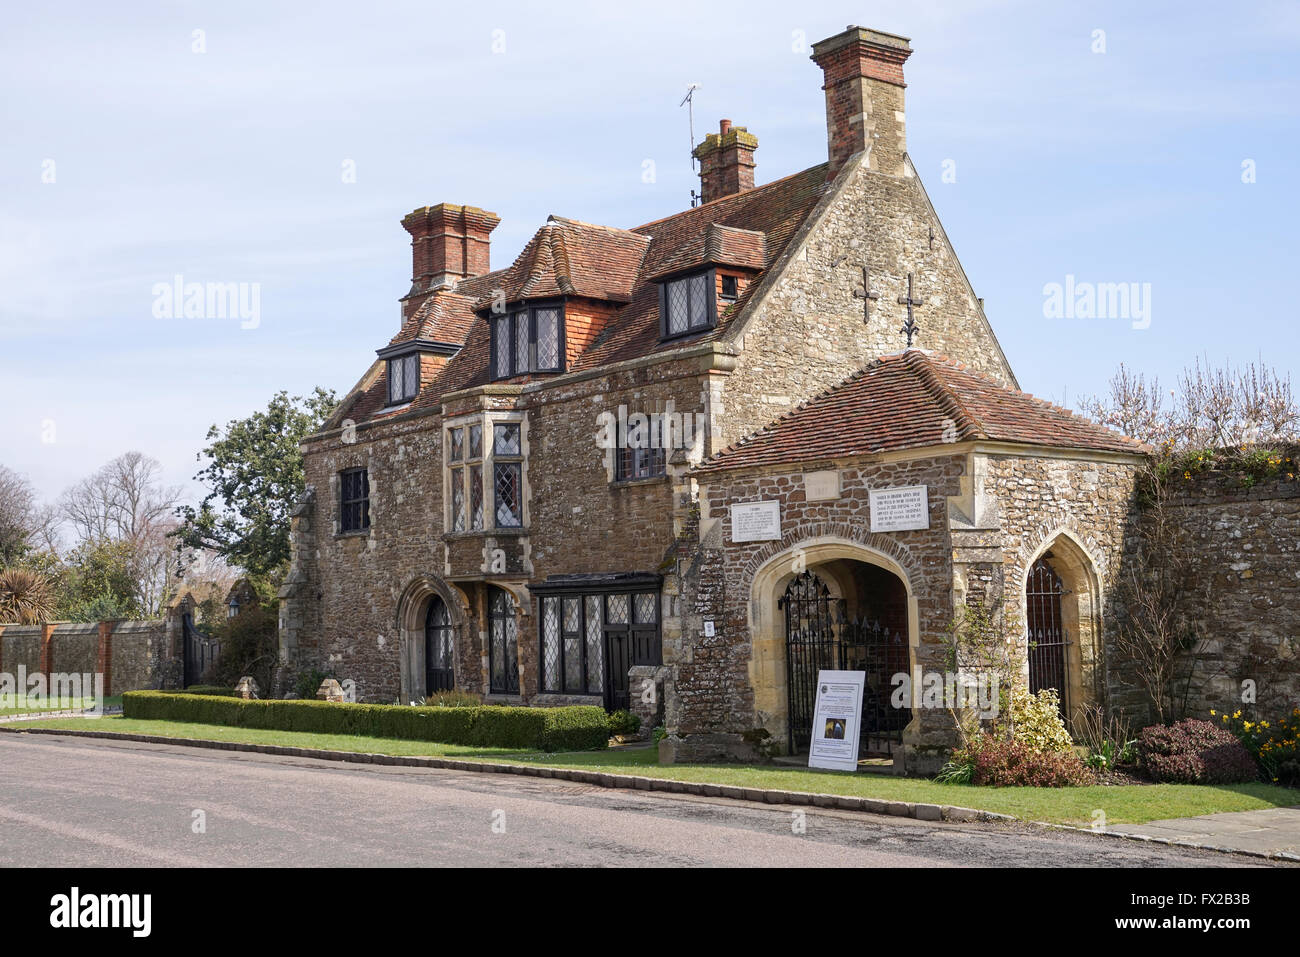 Town Well and Old Armoury, Winchelsea, East Sussex -1 - Stock Image